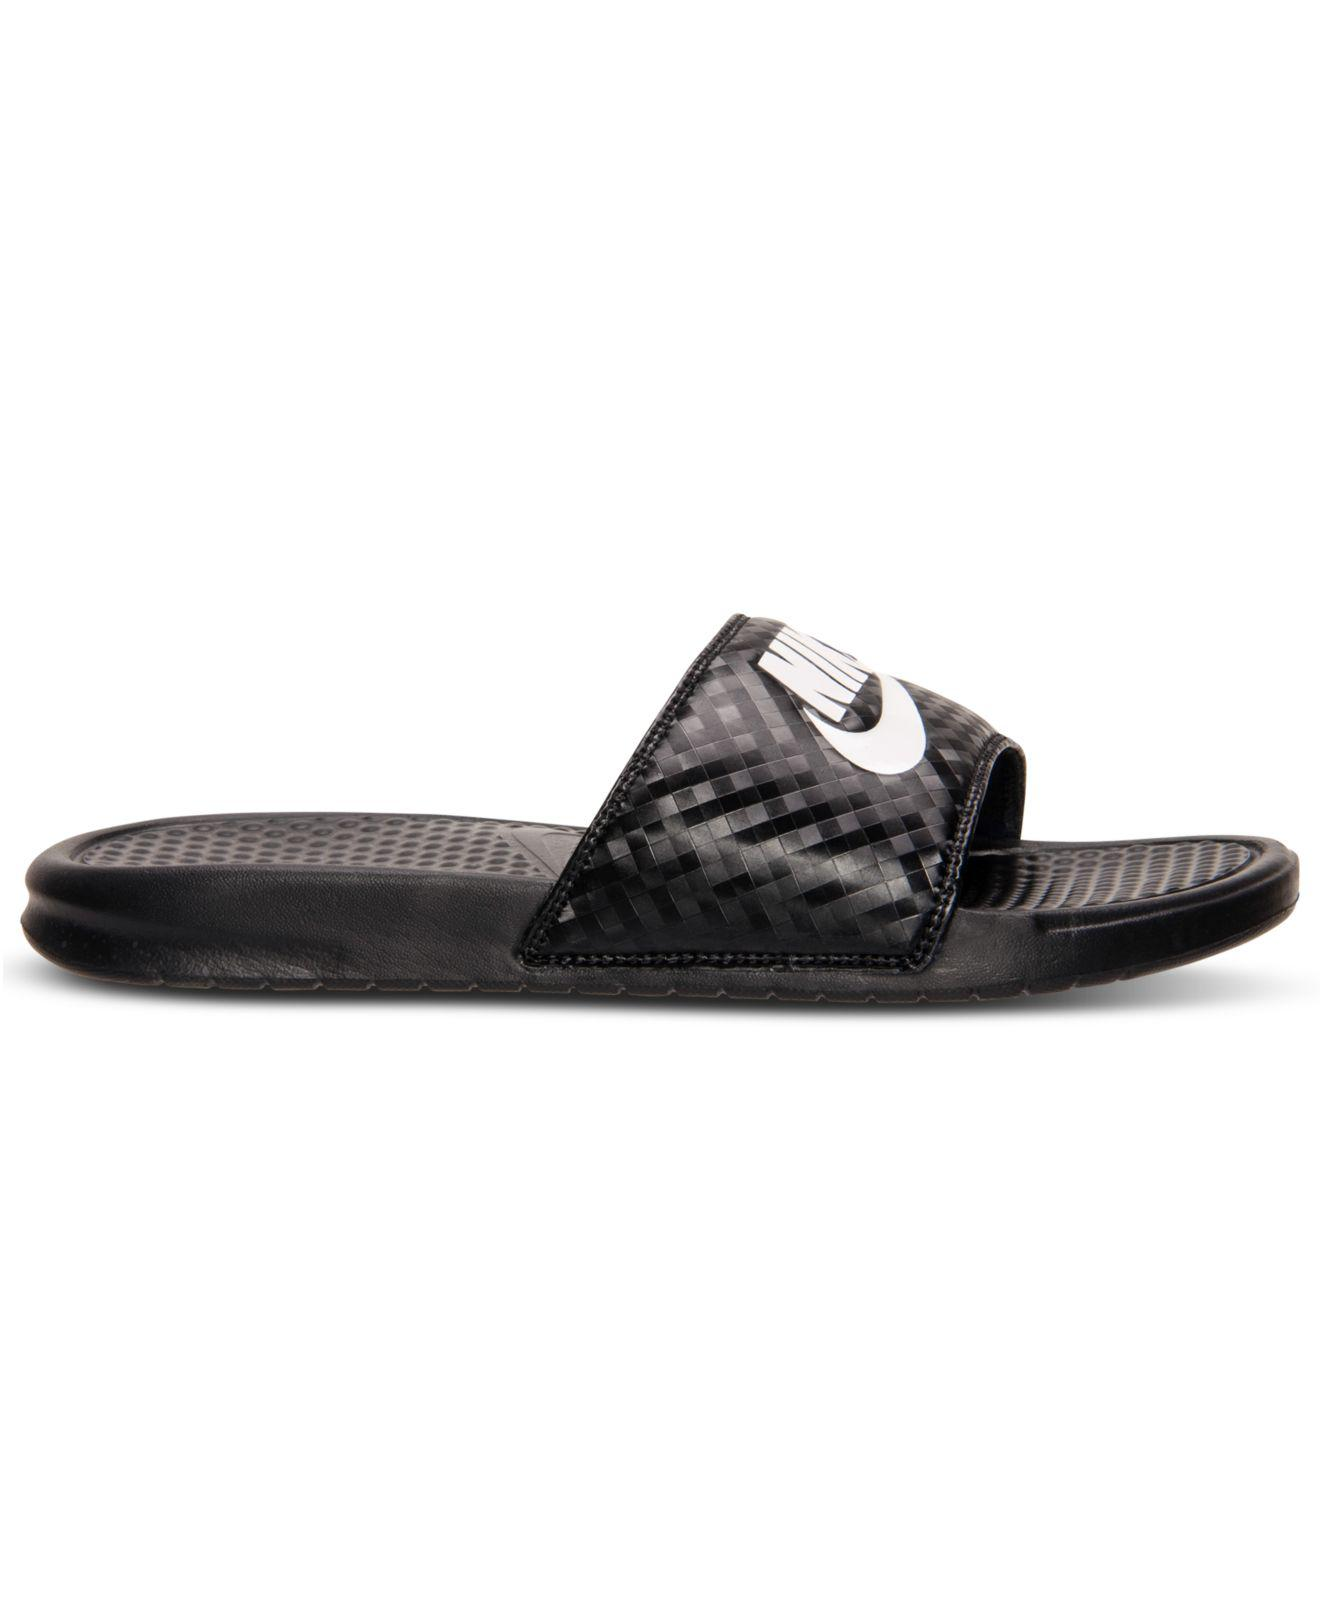 2e1172a5e Lyst - Nike Women s Benassi Jdi Swoosh Slide Sandals From Finish Line in  Black - Save 17%